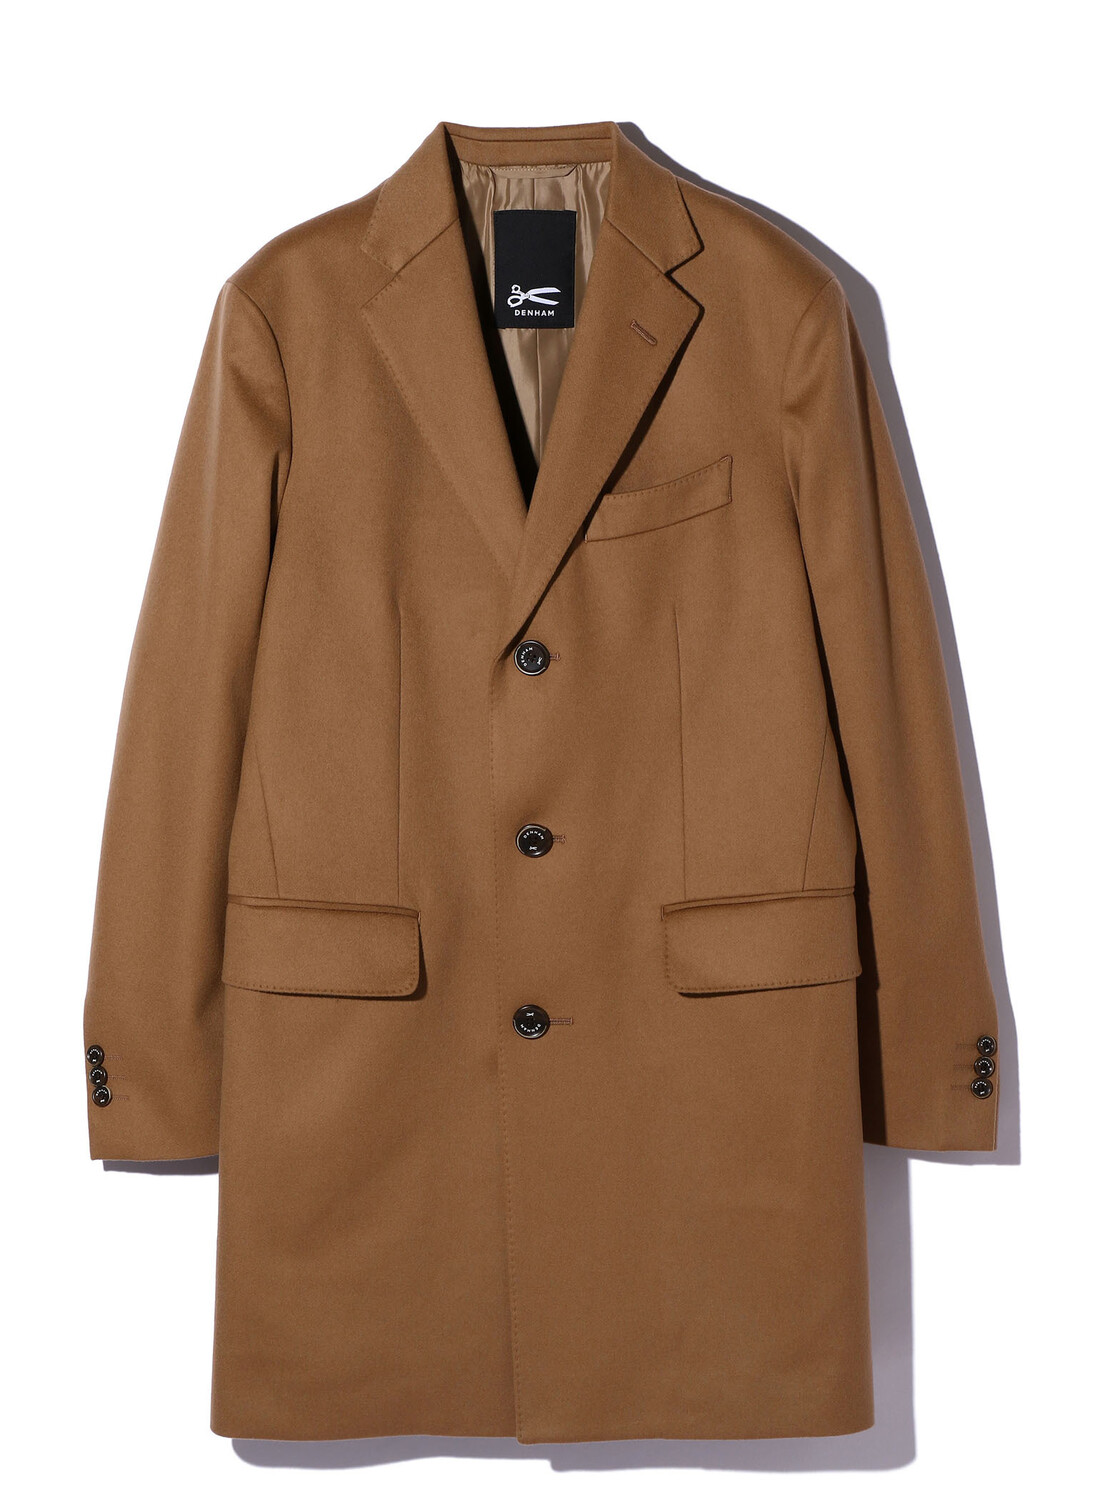 DNHM CHESTER COAT